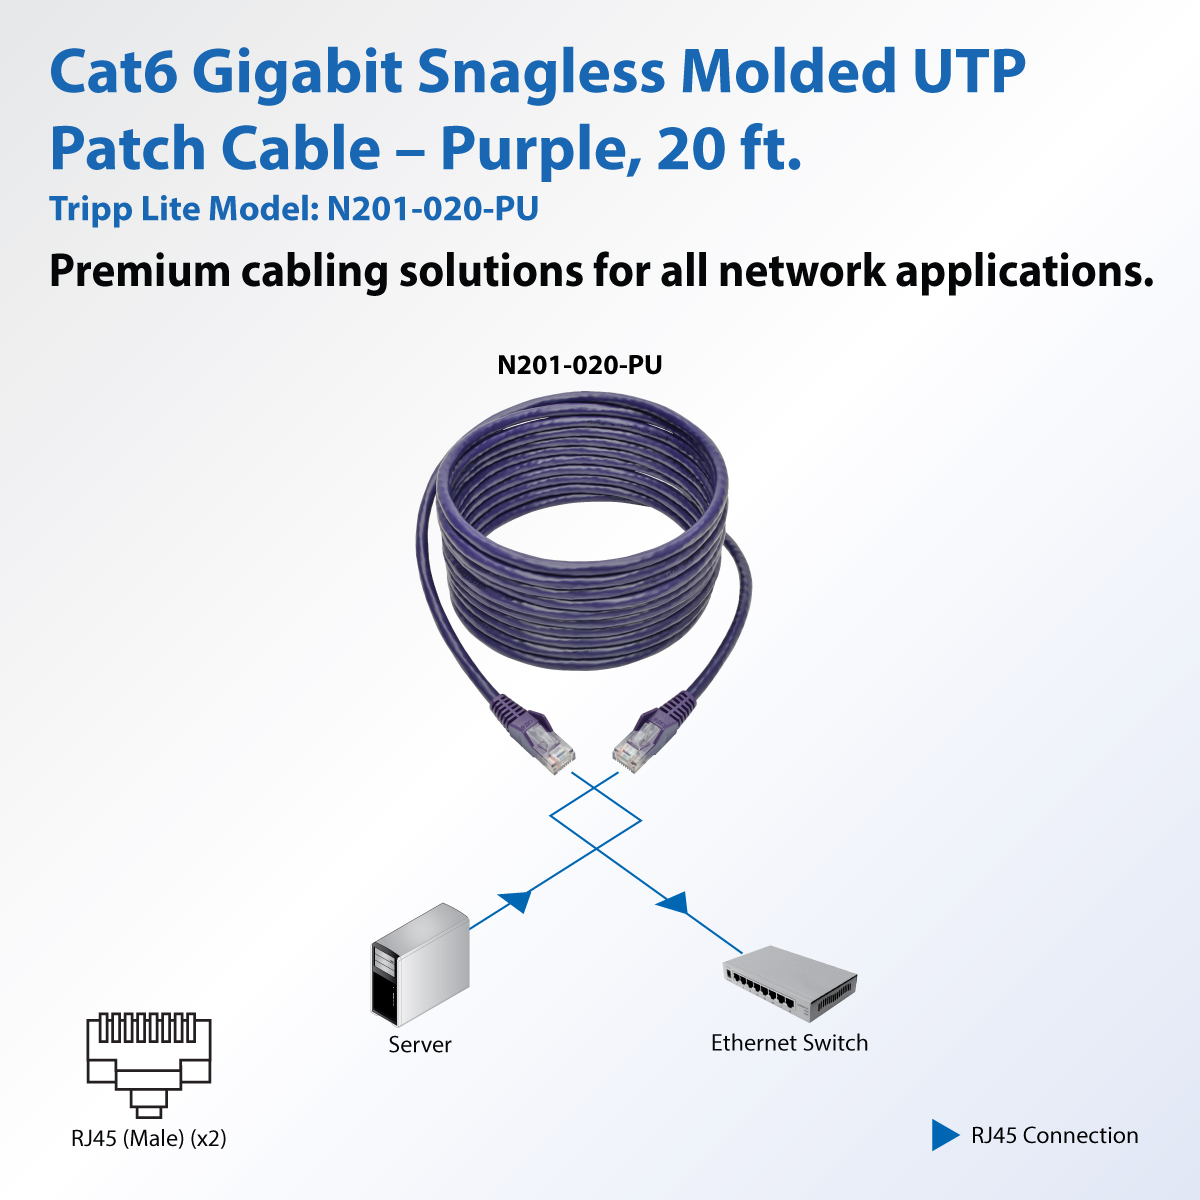 Cat6 Gigabit Snagless Molded Utp Patch Cable Rj45 M Purple 20 Cables Cat5e Green Ethernet Boot 3 Foot Product Image